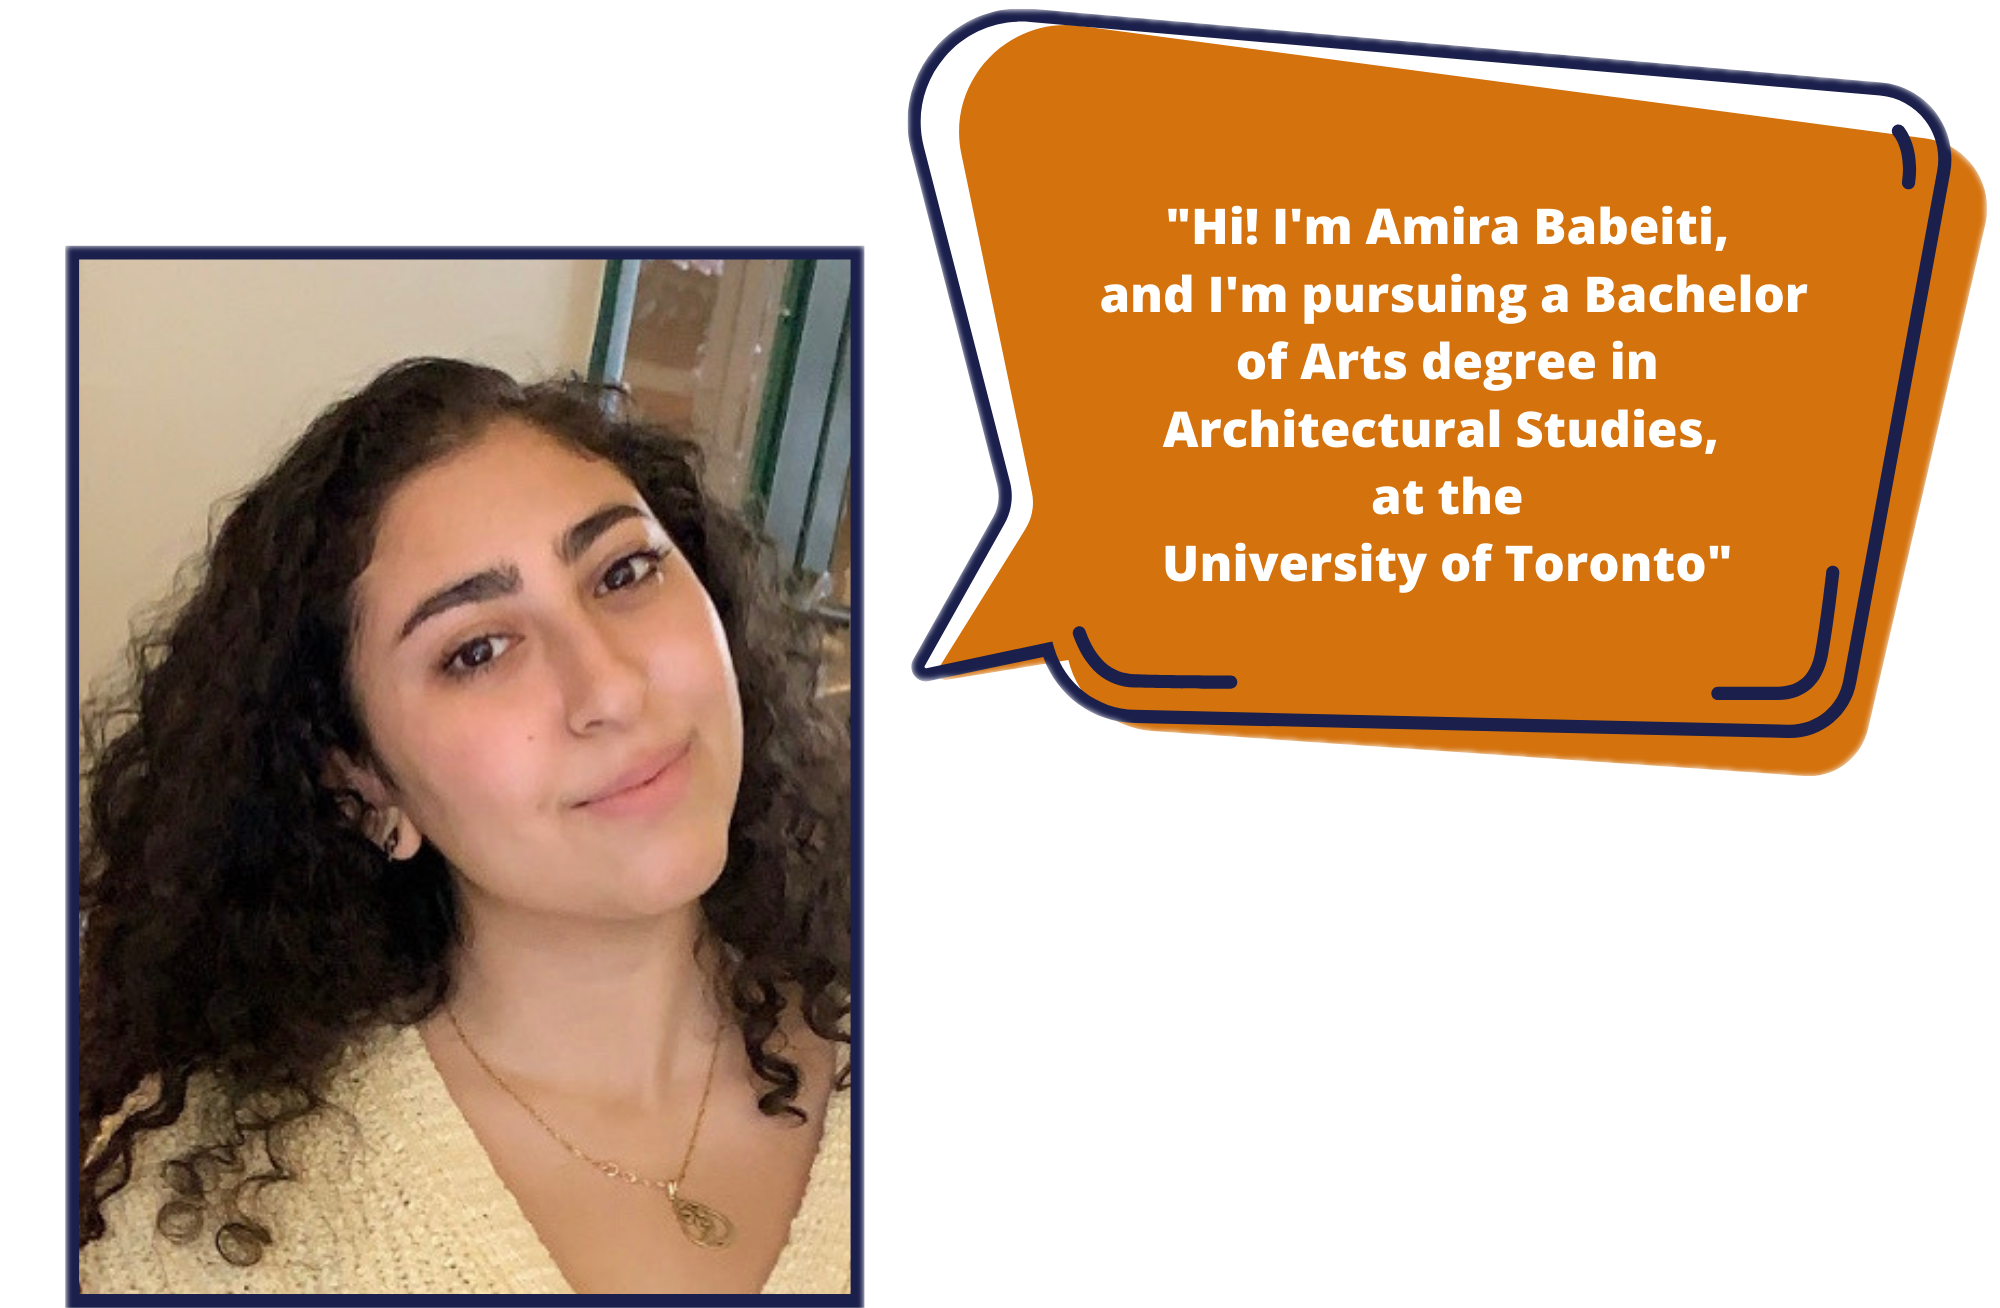 Amira Babeiti is pursuing a Bachelor of Arts degree in Architectural Studies